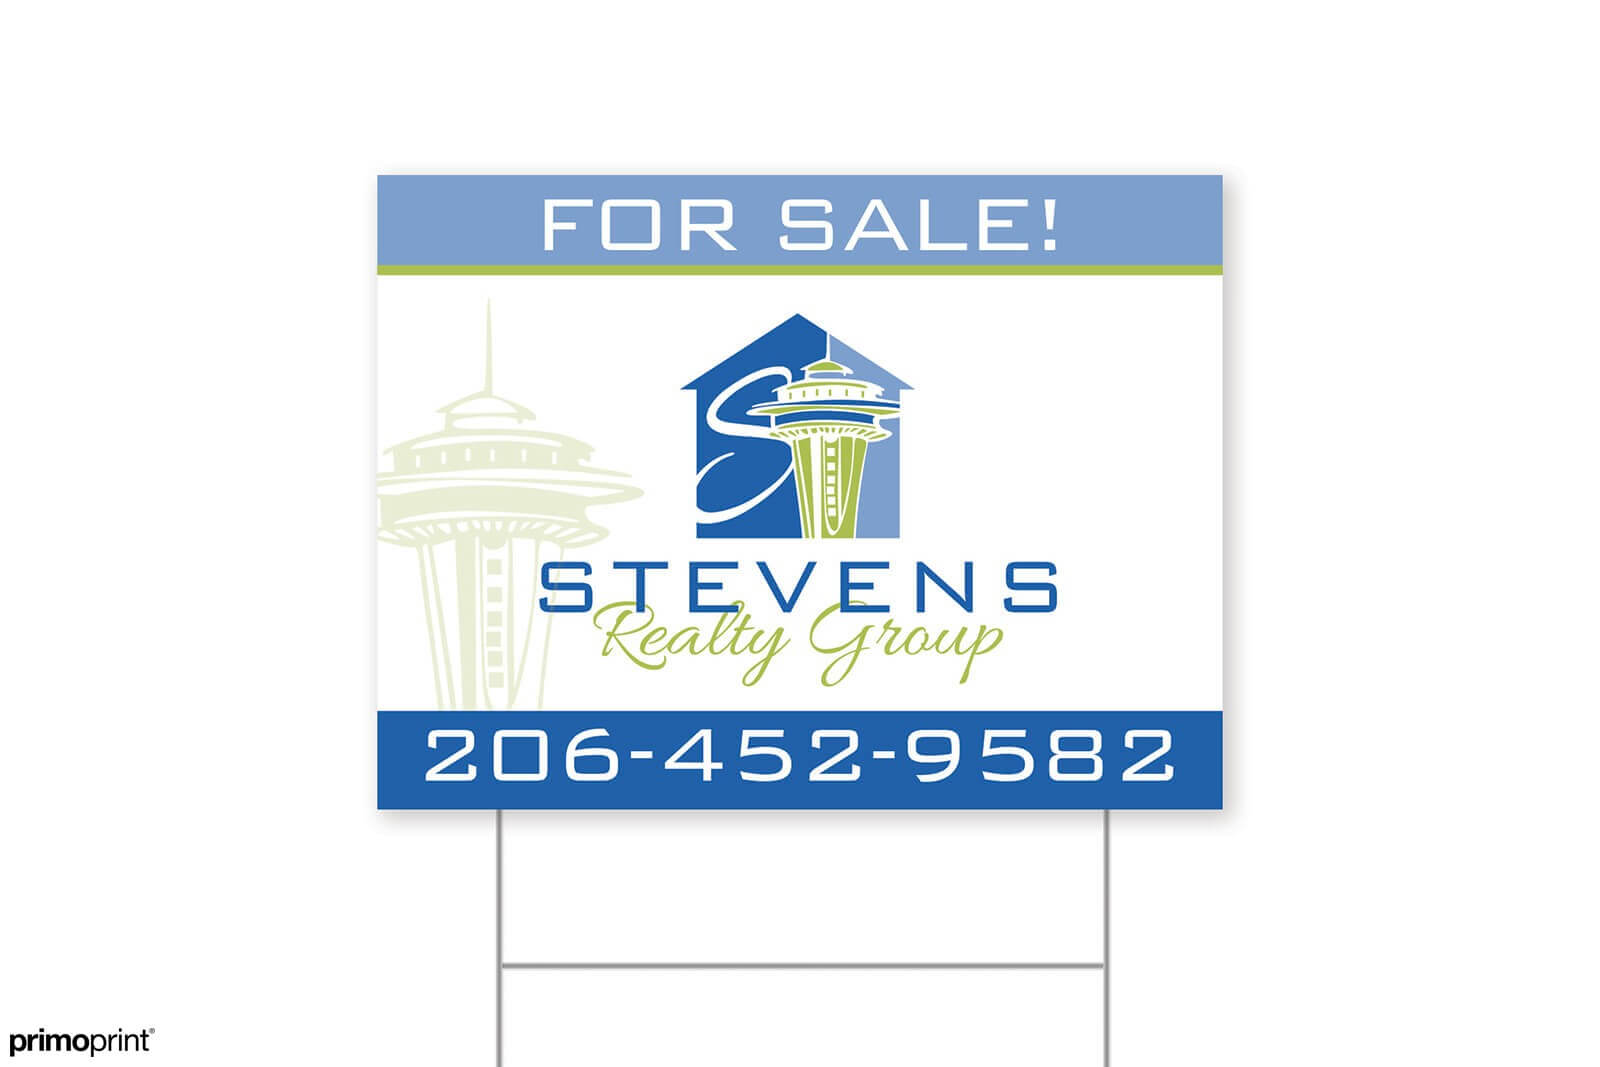 Custom realtor yard sign designed by Primoprint.